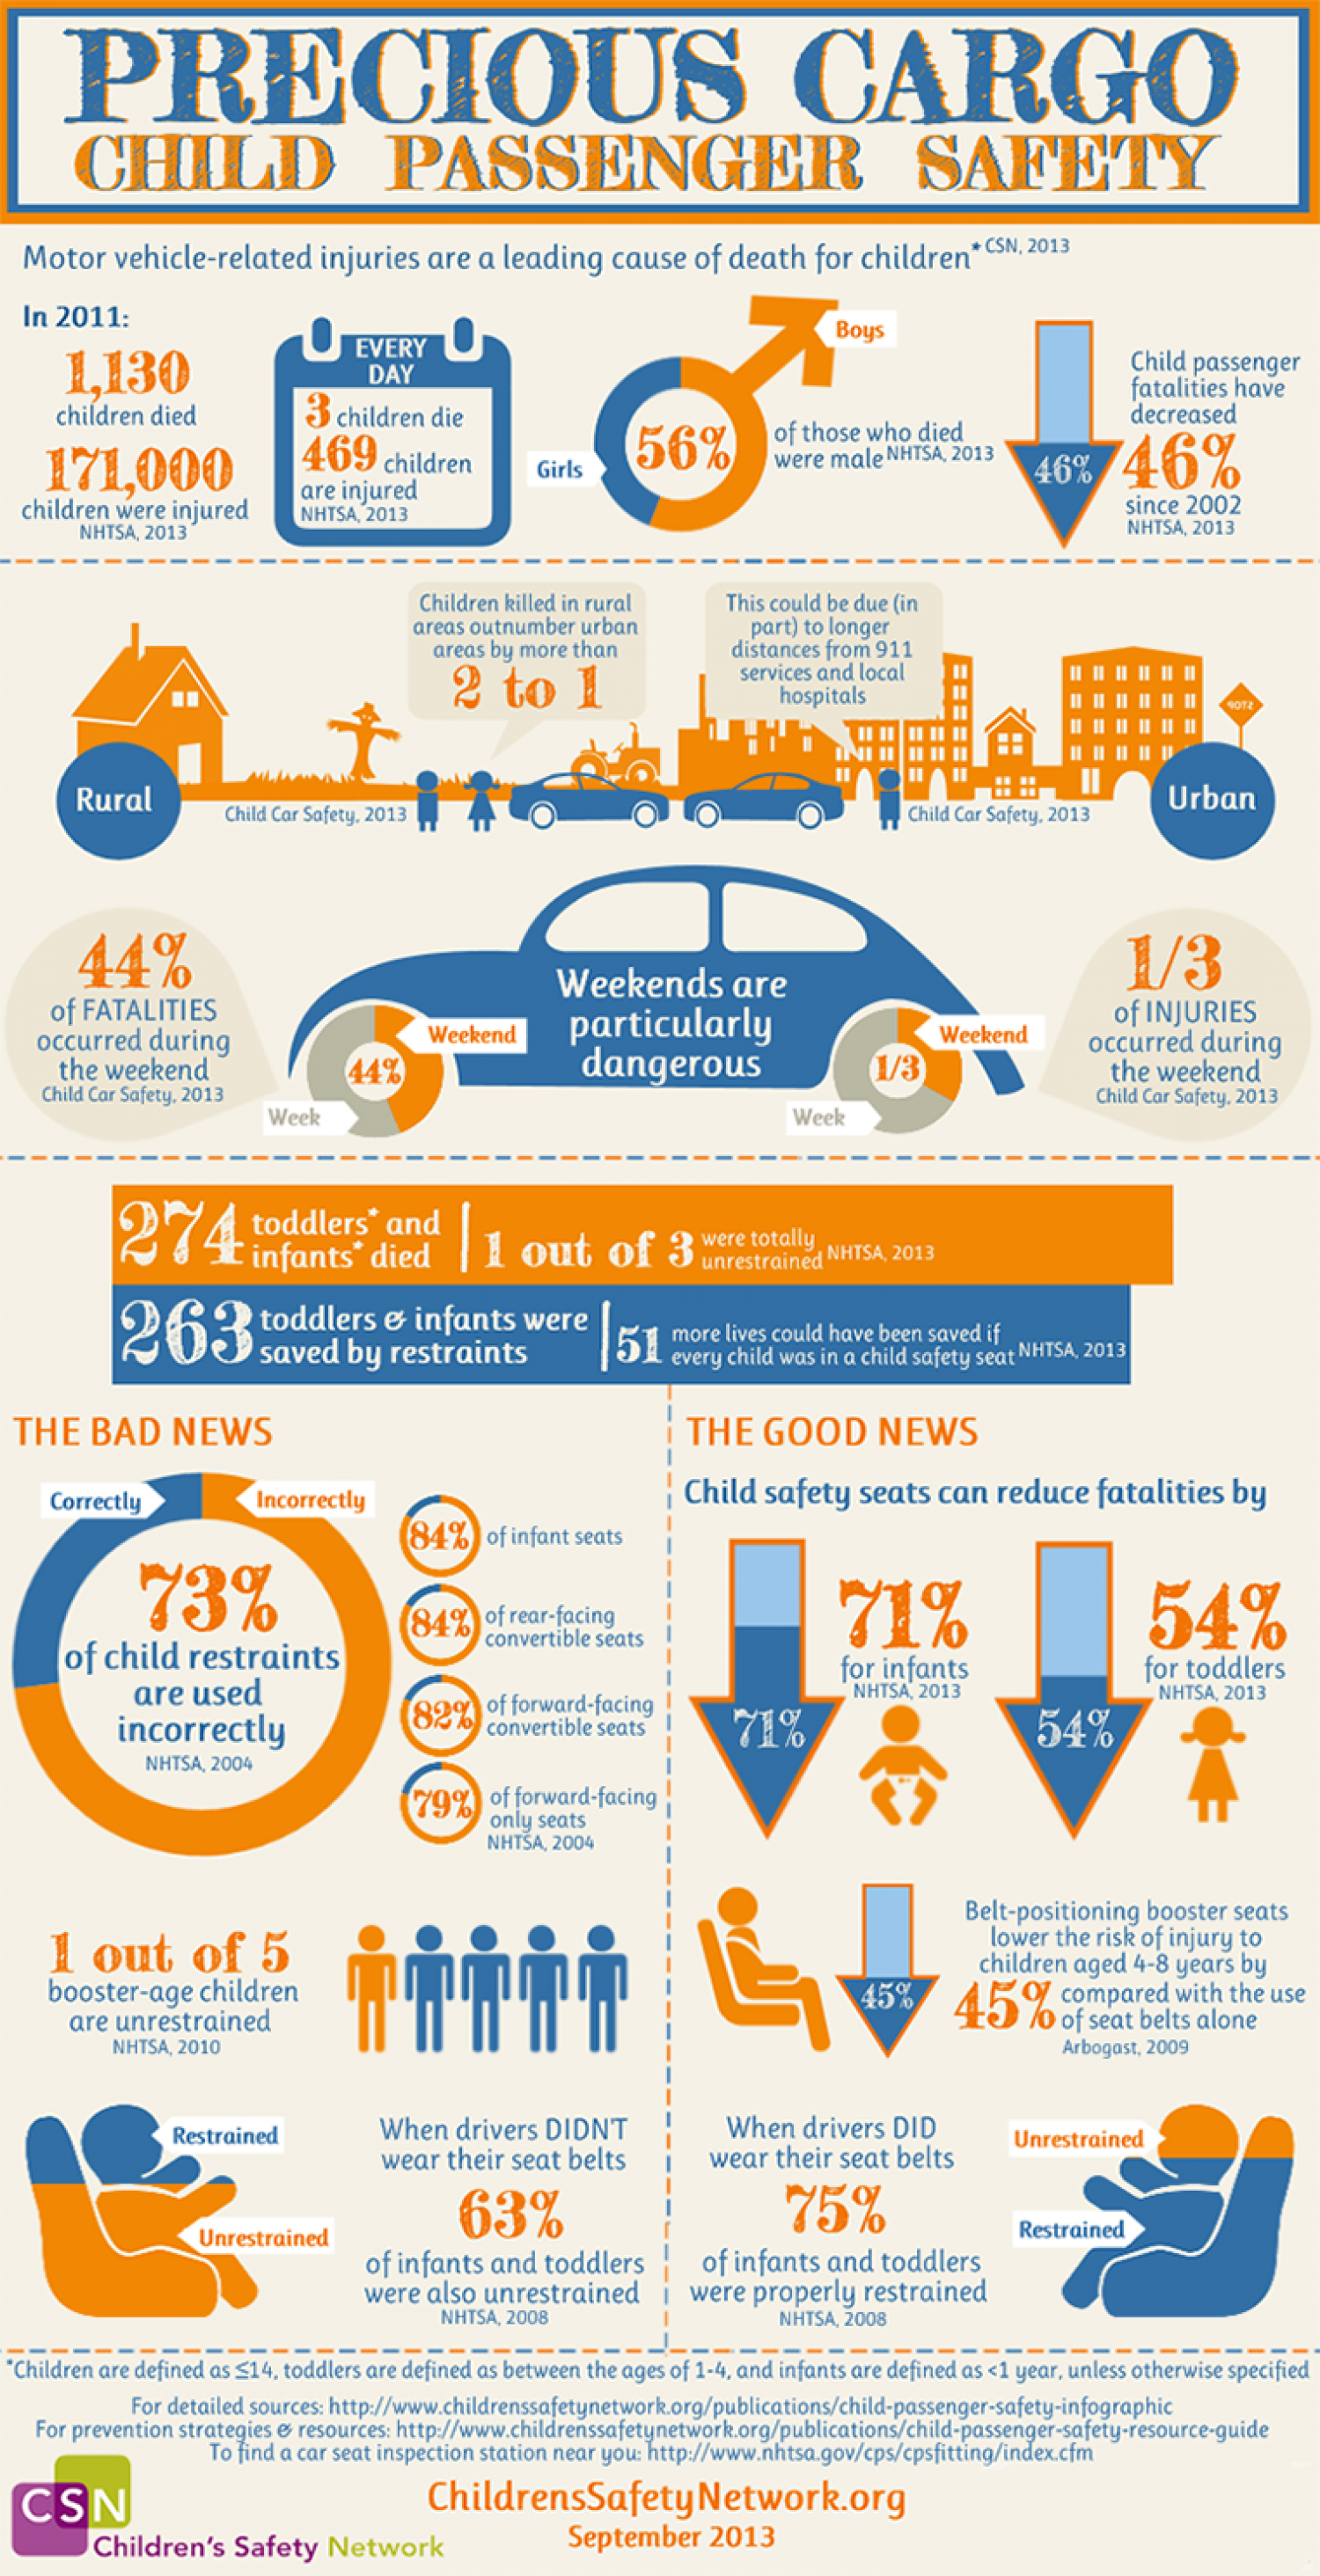 Precious Cargo: Child Passenger Safety Infographic